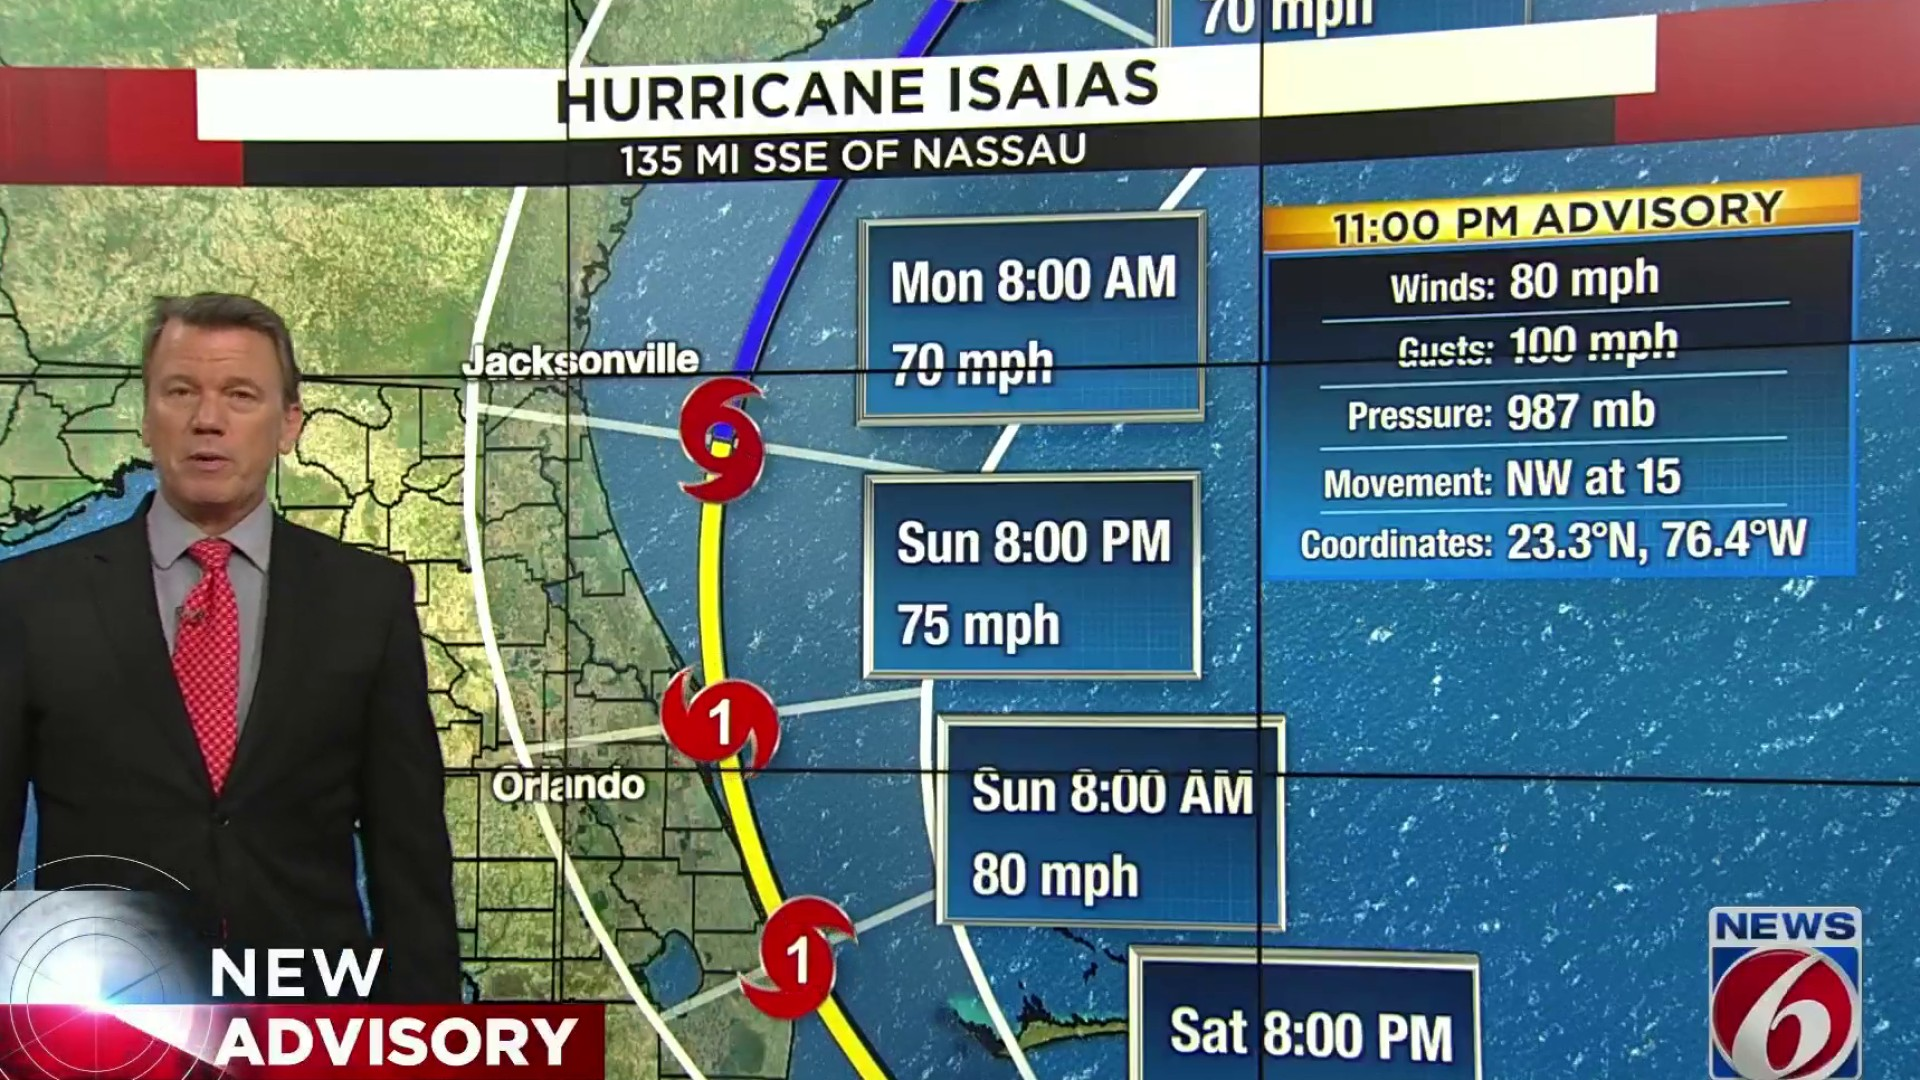 Live Track Forecast Cone Computer Models Updates And More For Hurricane Isaias